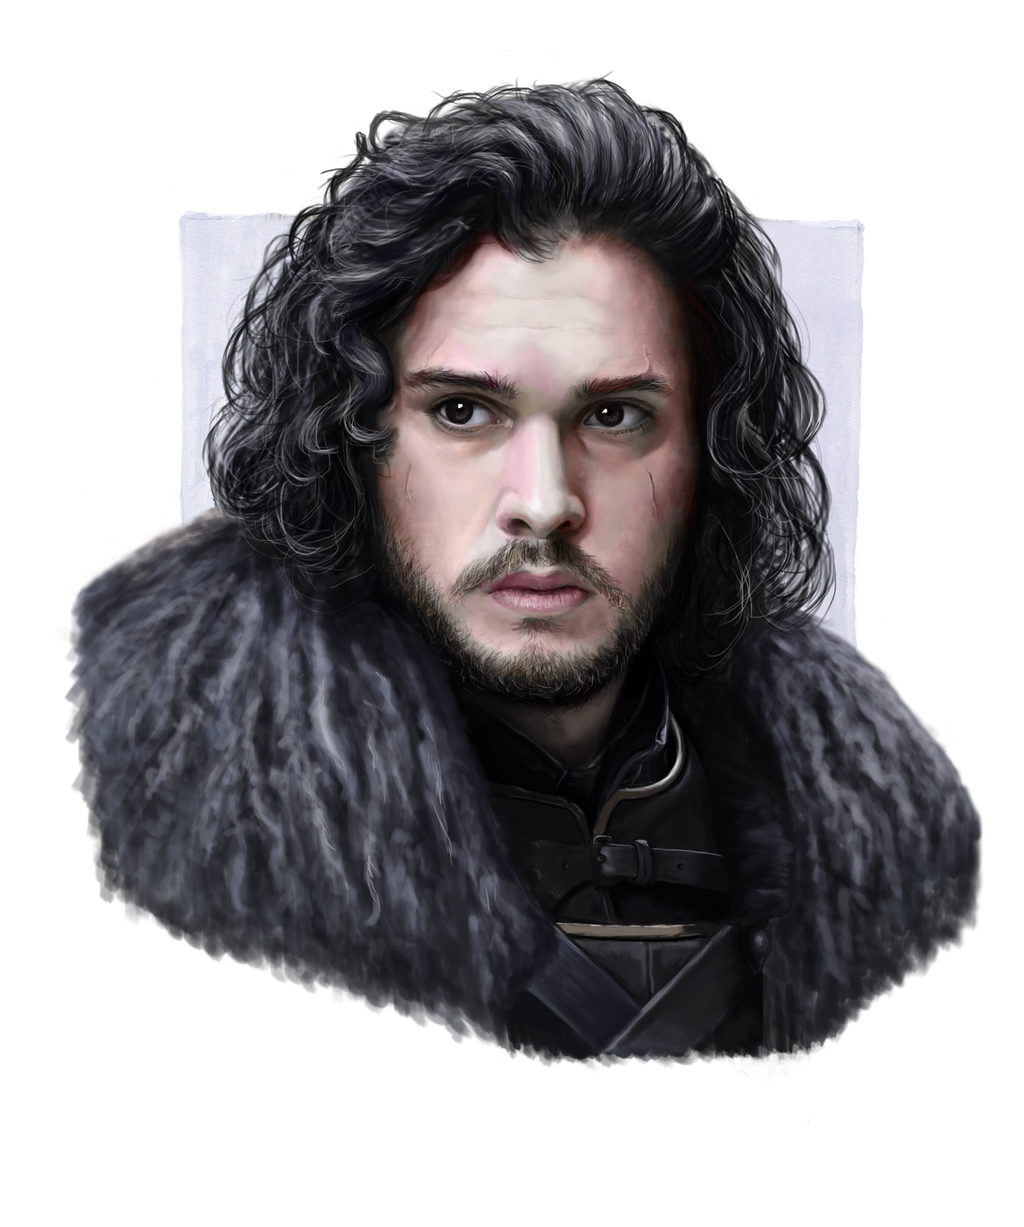 Galerry Jon Snow PNG Transparent Images PNG All